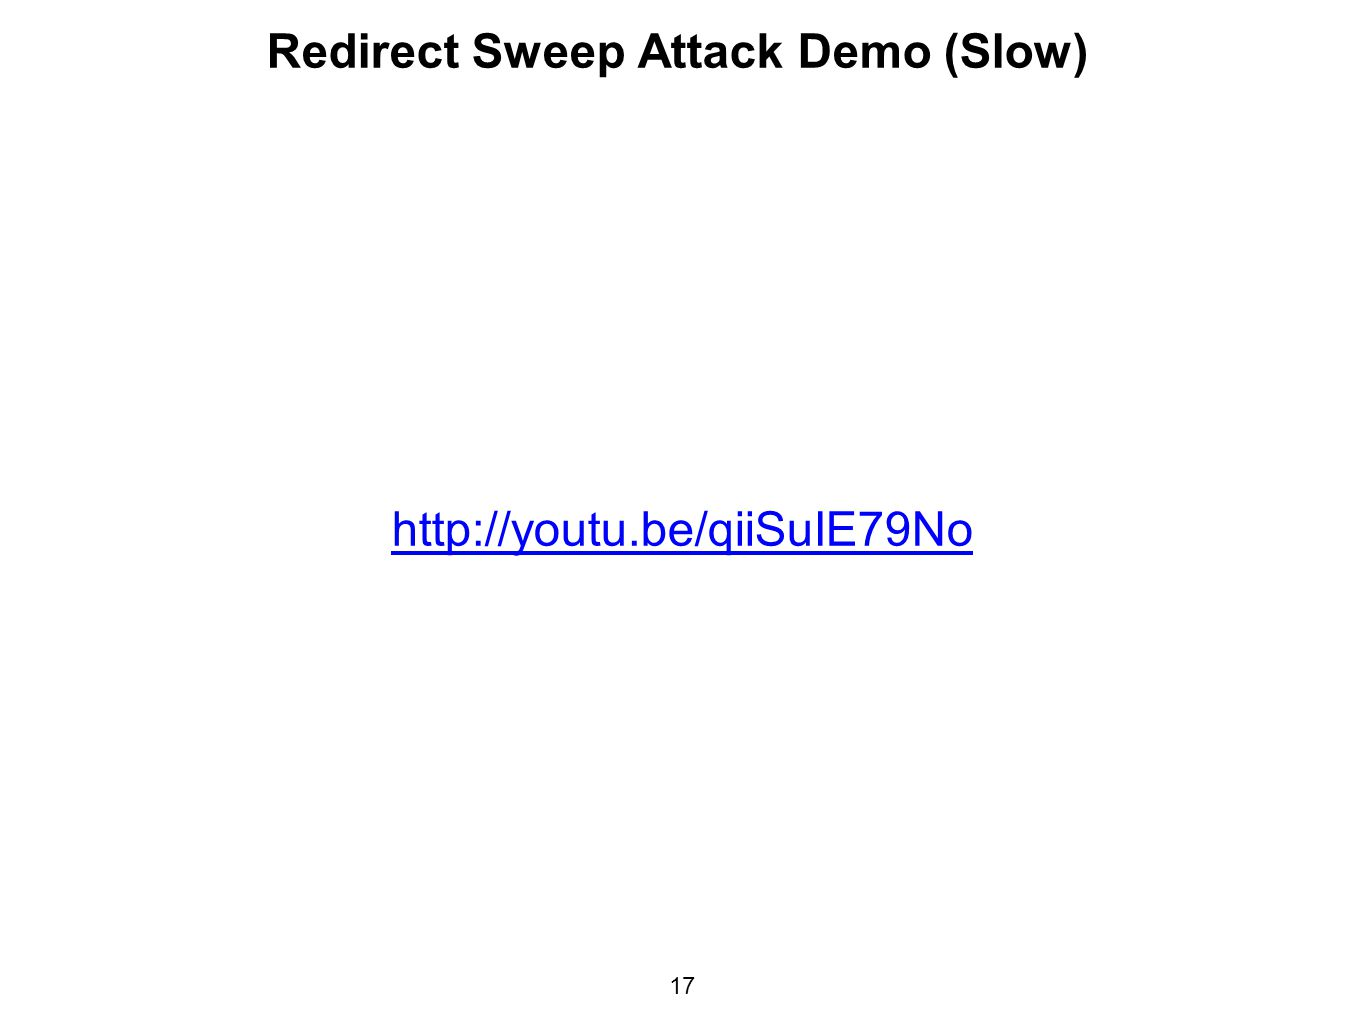 17 Redirect Sweep Attack Demo (Slow) http://youtu.be/qiiSuIE79No